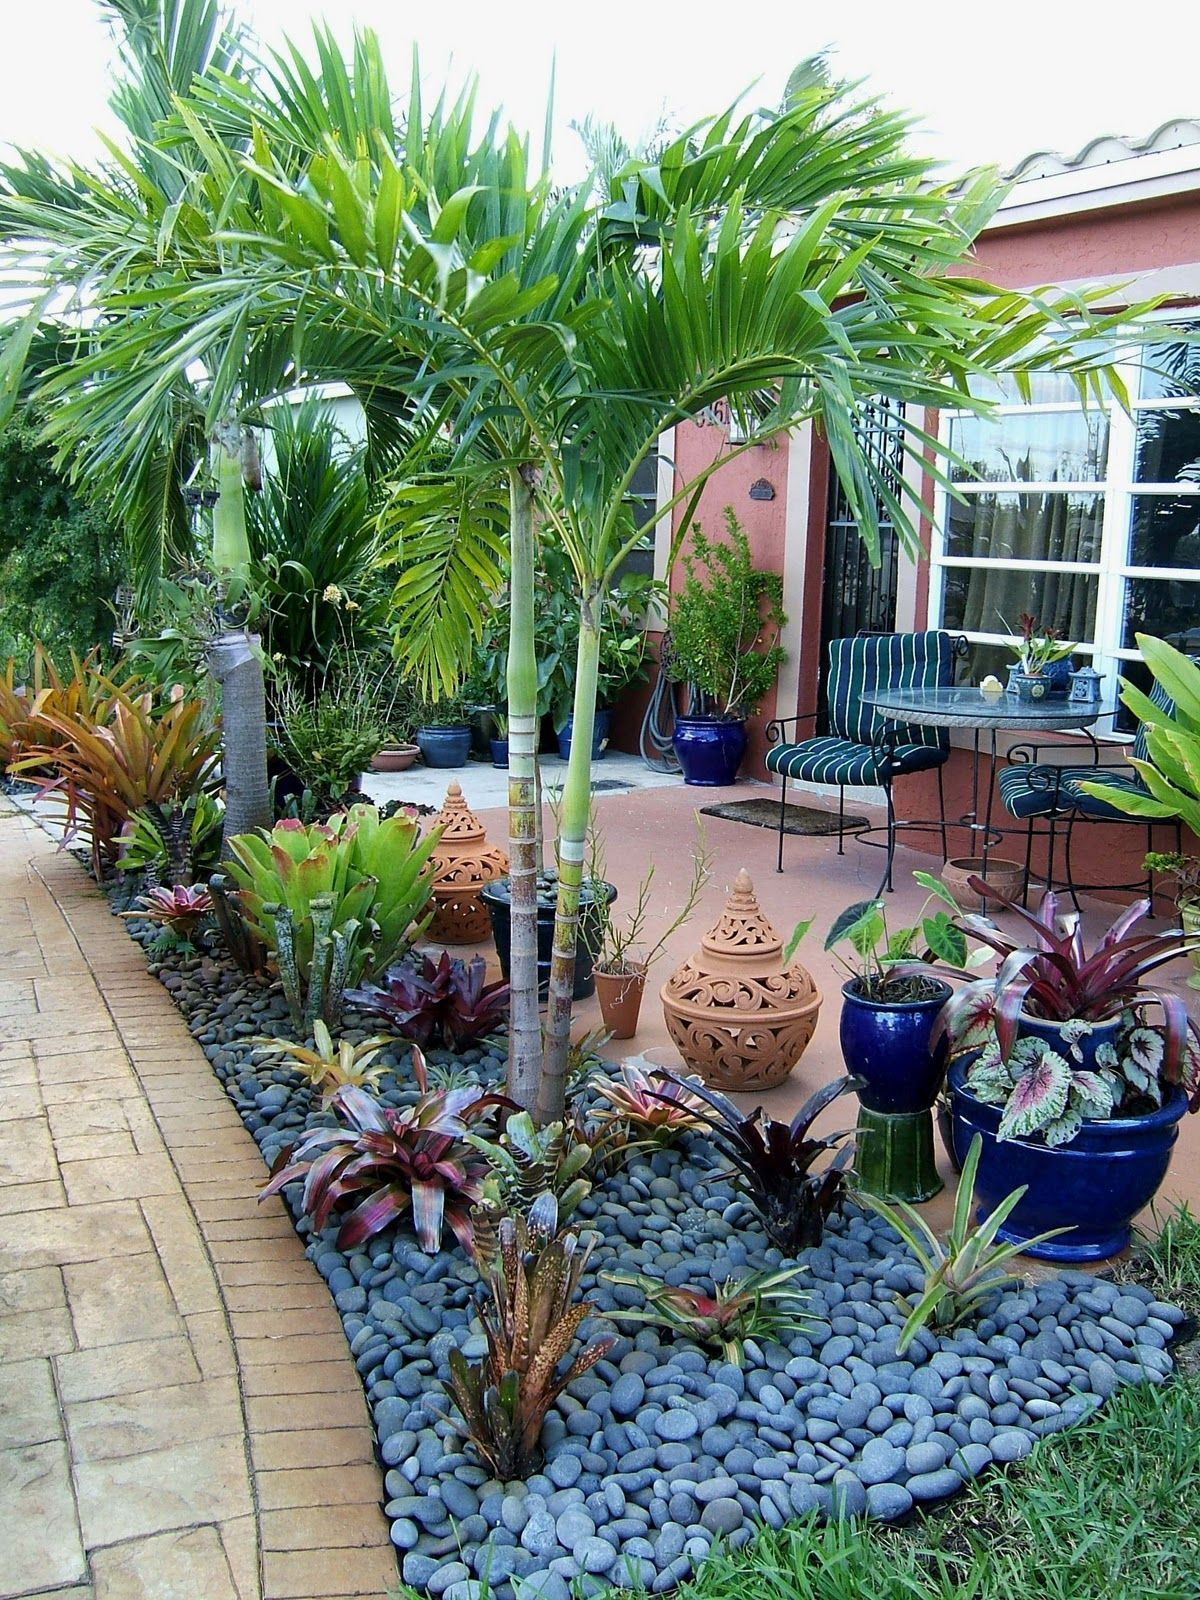 15 Some Of The Coolest Initiatives Of How To Make Florida Landscaping Ideas For Backyard Tropical Backyard Landscaping Florida Landscaping Backyard Landscaping Designs